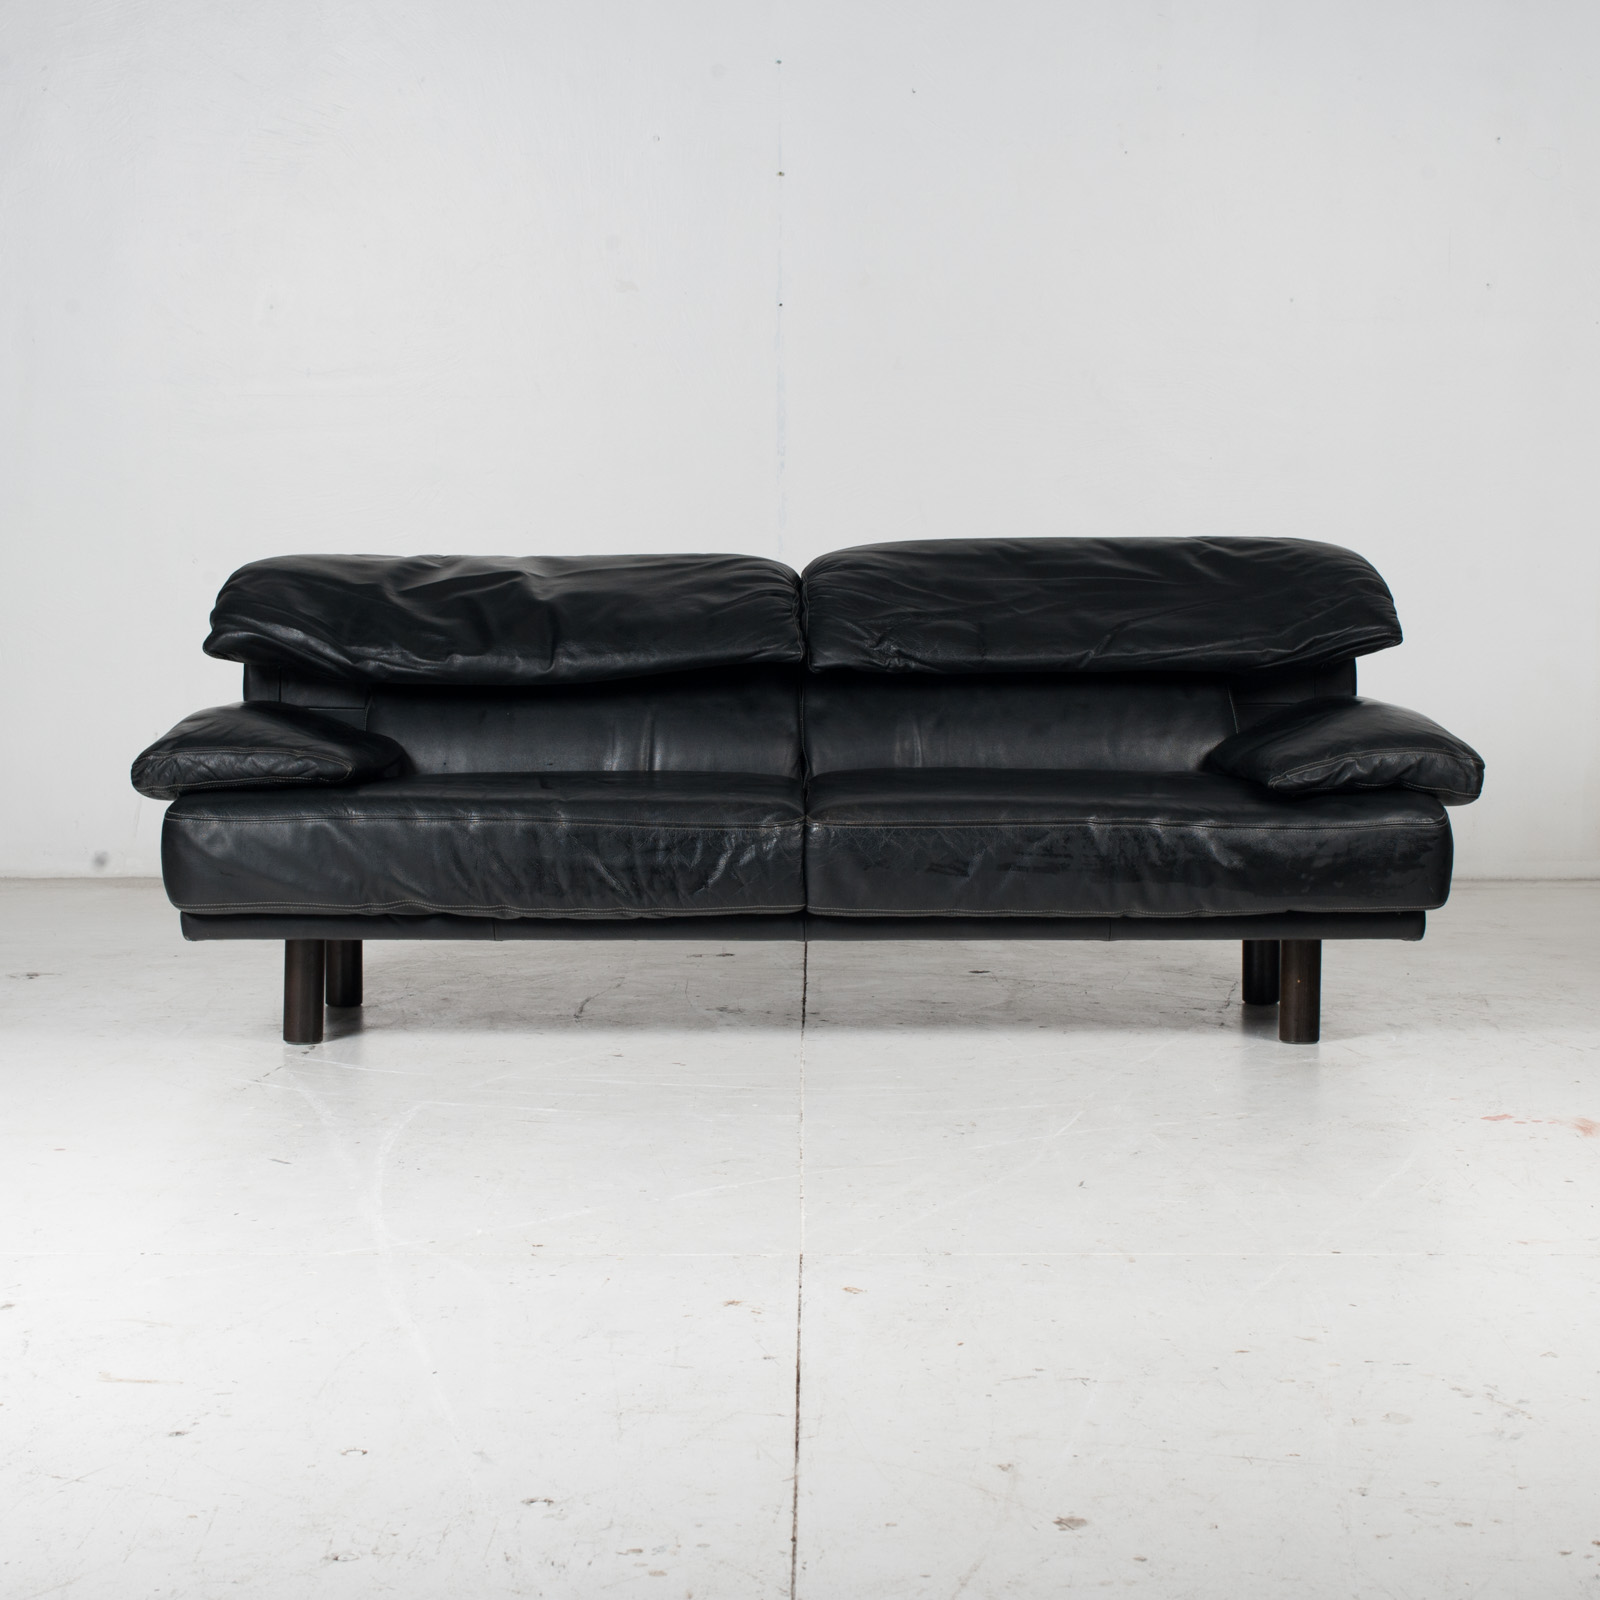 2 Seat Sofa In The Style Of Alanda By Paolo Piva For B&b Italia In Black Leather, 1980s, Italy It 1